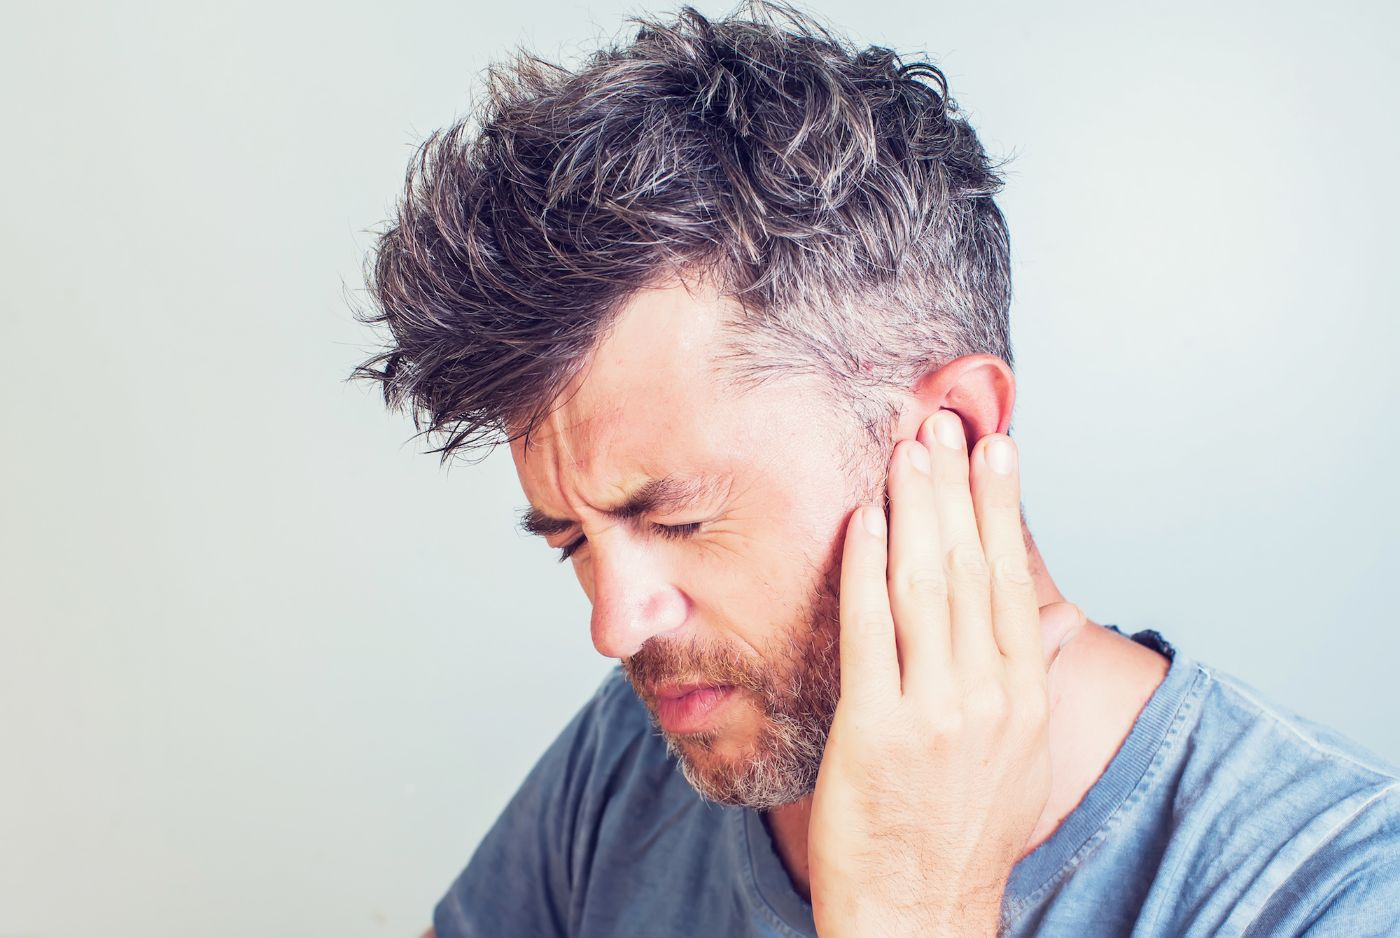 If you've recently had a root canal and your ear has started to hurt, you may be wondering whether these issues are related. The team at Nashoba Valley Dental wants to keep you informed about any possible side effects of root canal treatment and what to do to care for them. Here's everything you need